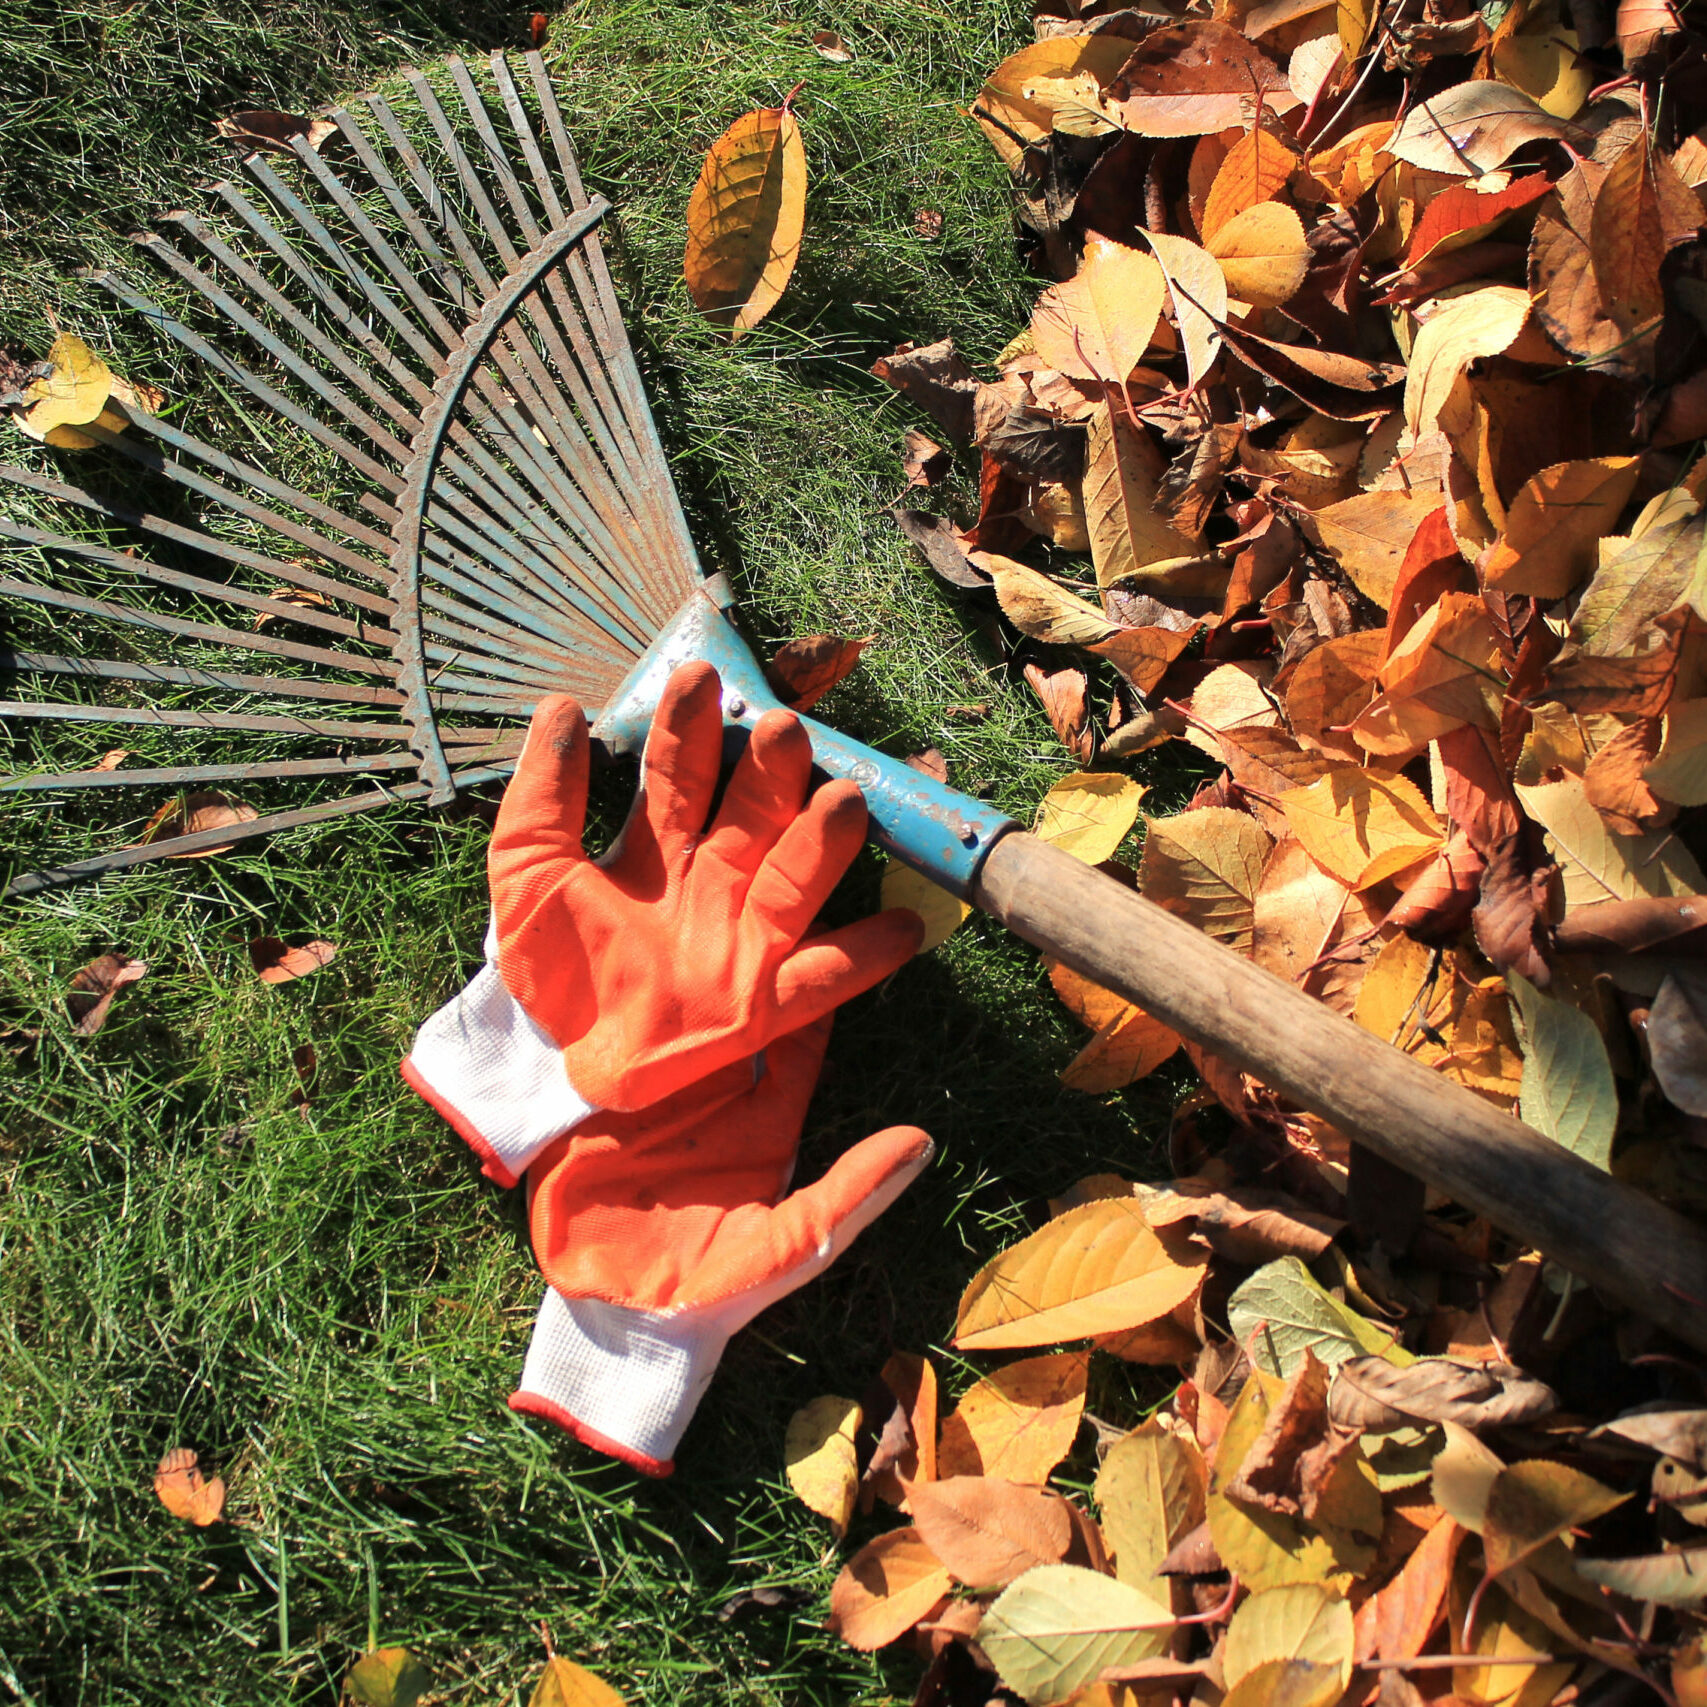 A fan rake and gloves lie on the grass next to a pile of fallen autumn leaves. Top view.